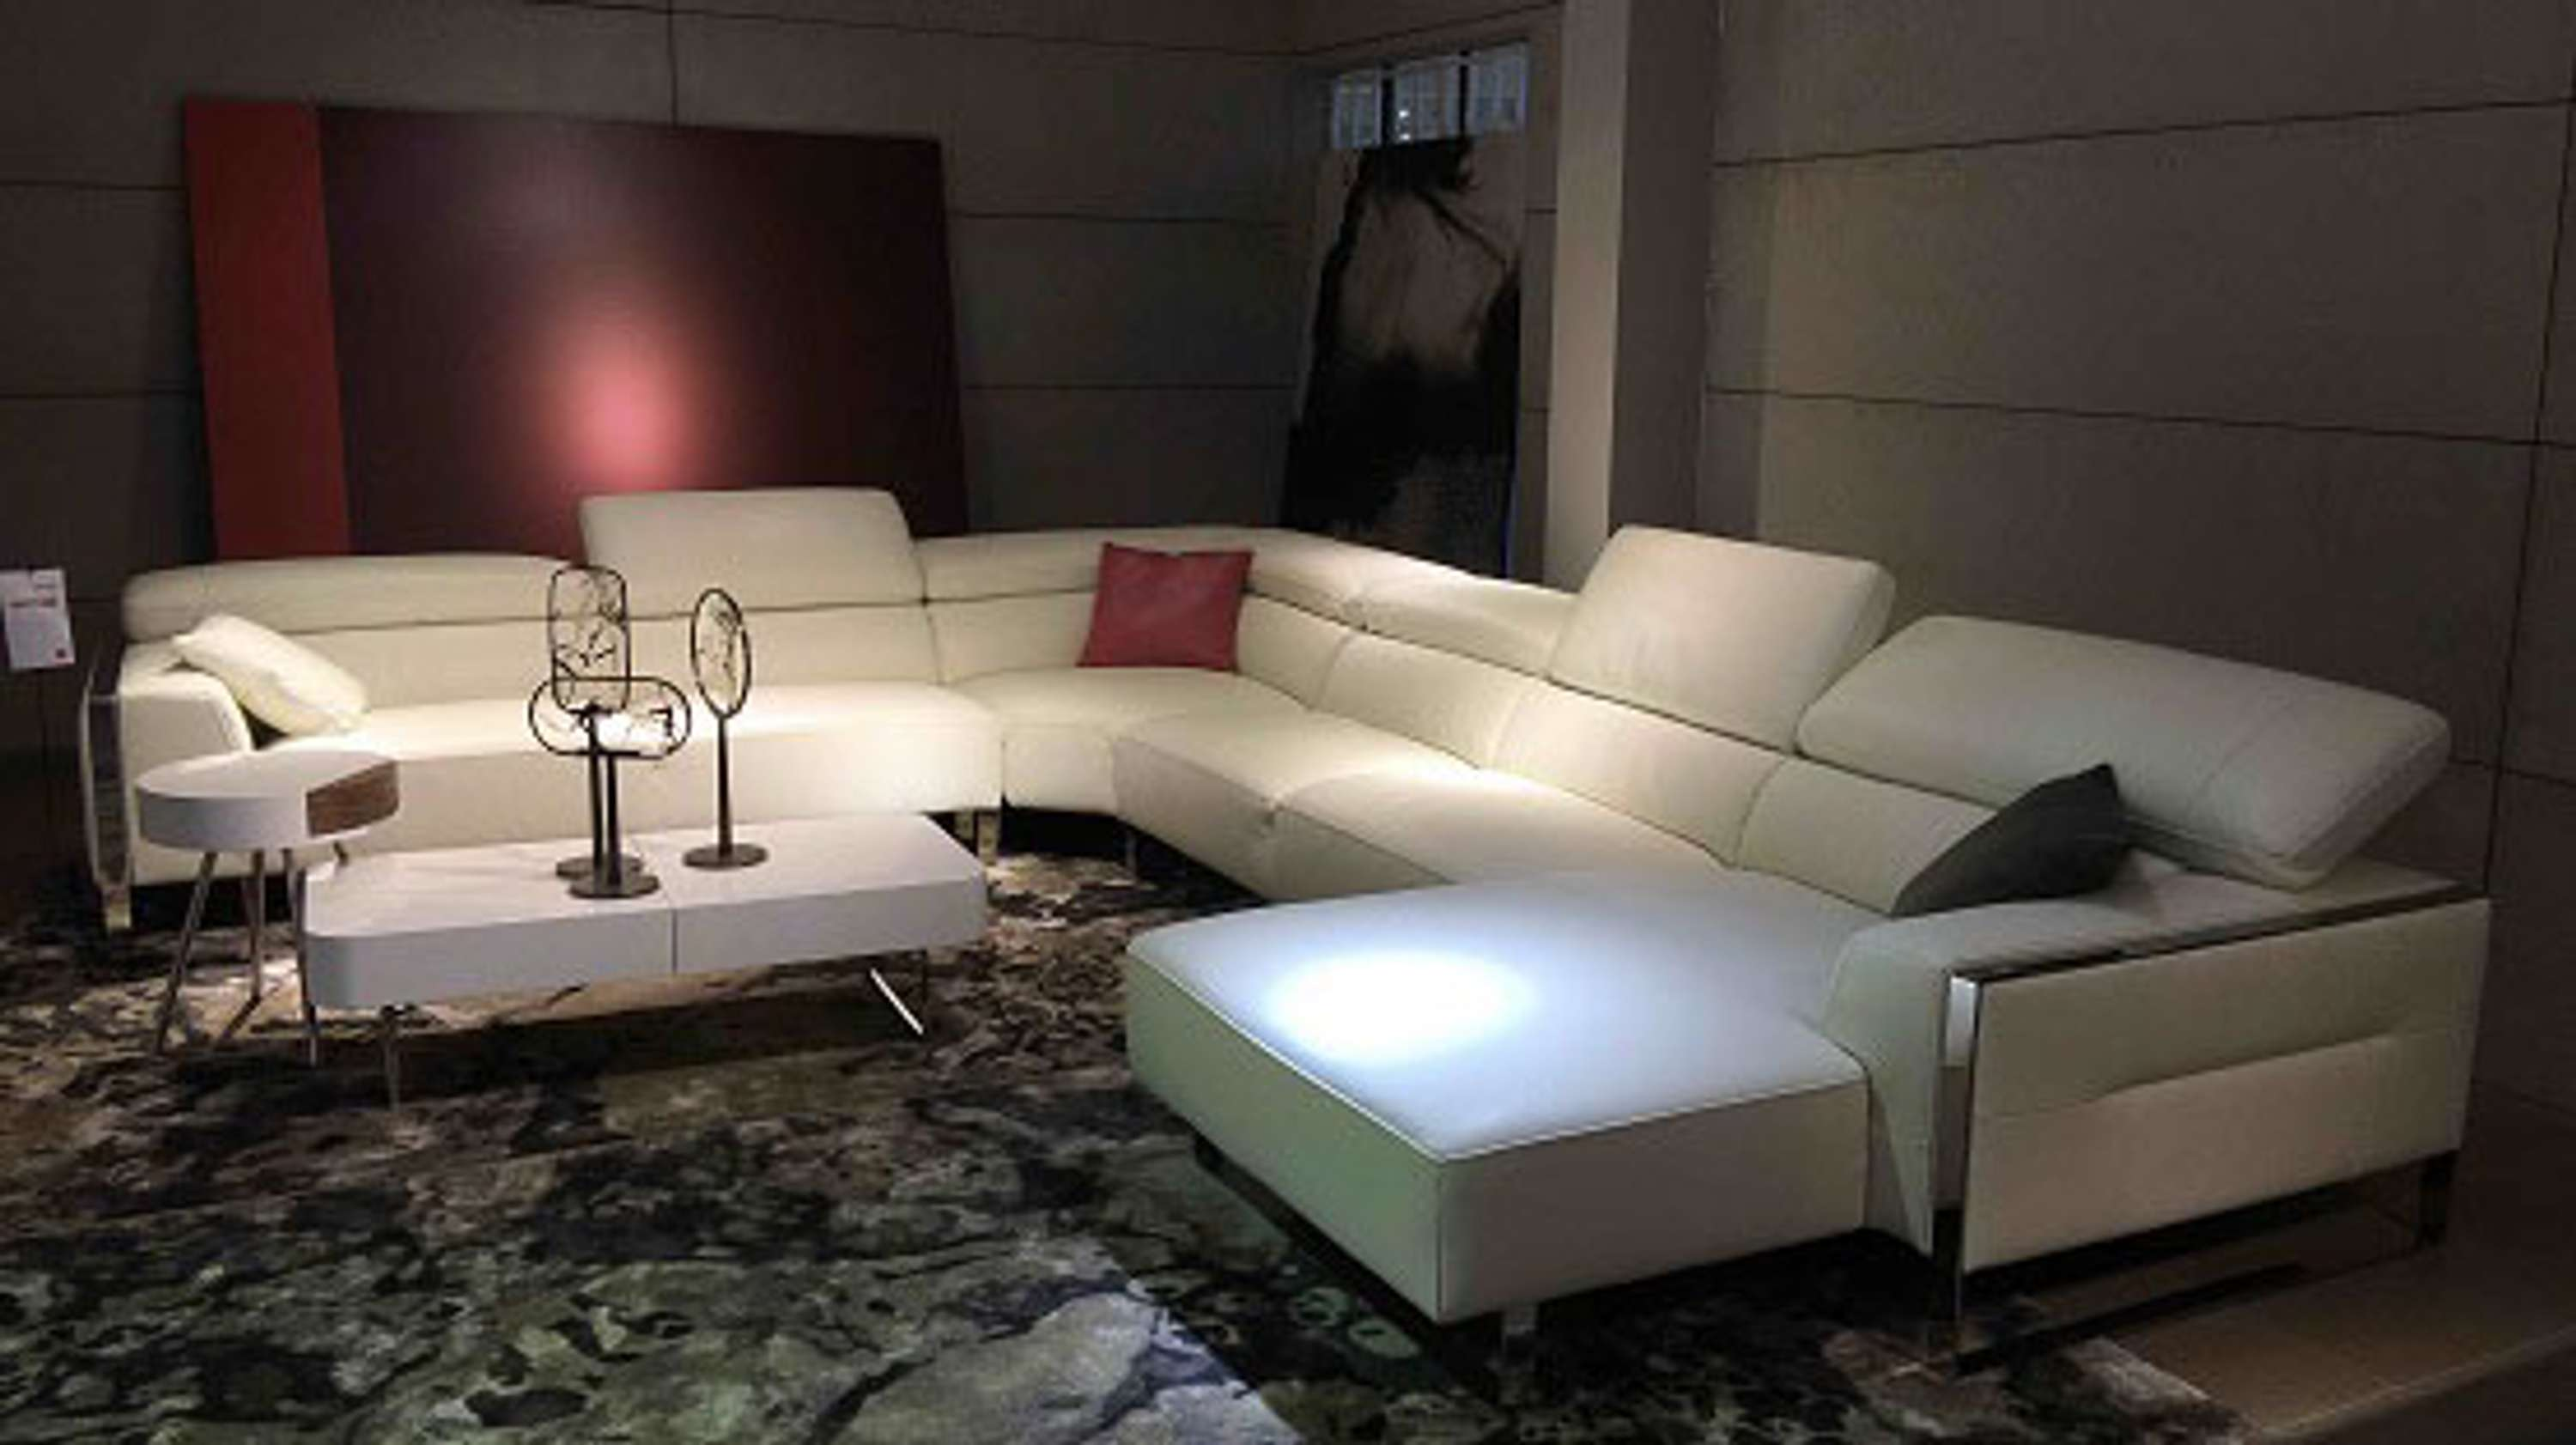 Remarkable European Contemporary Style Leather Sectional Sofa 5200 Uwap Interior Chair Design Uwaporg